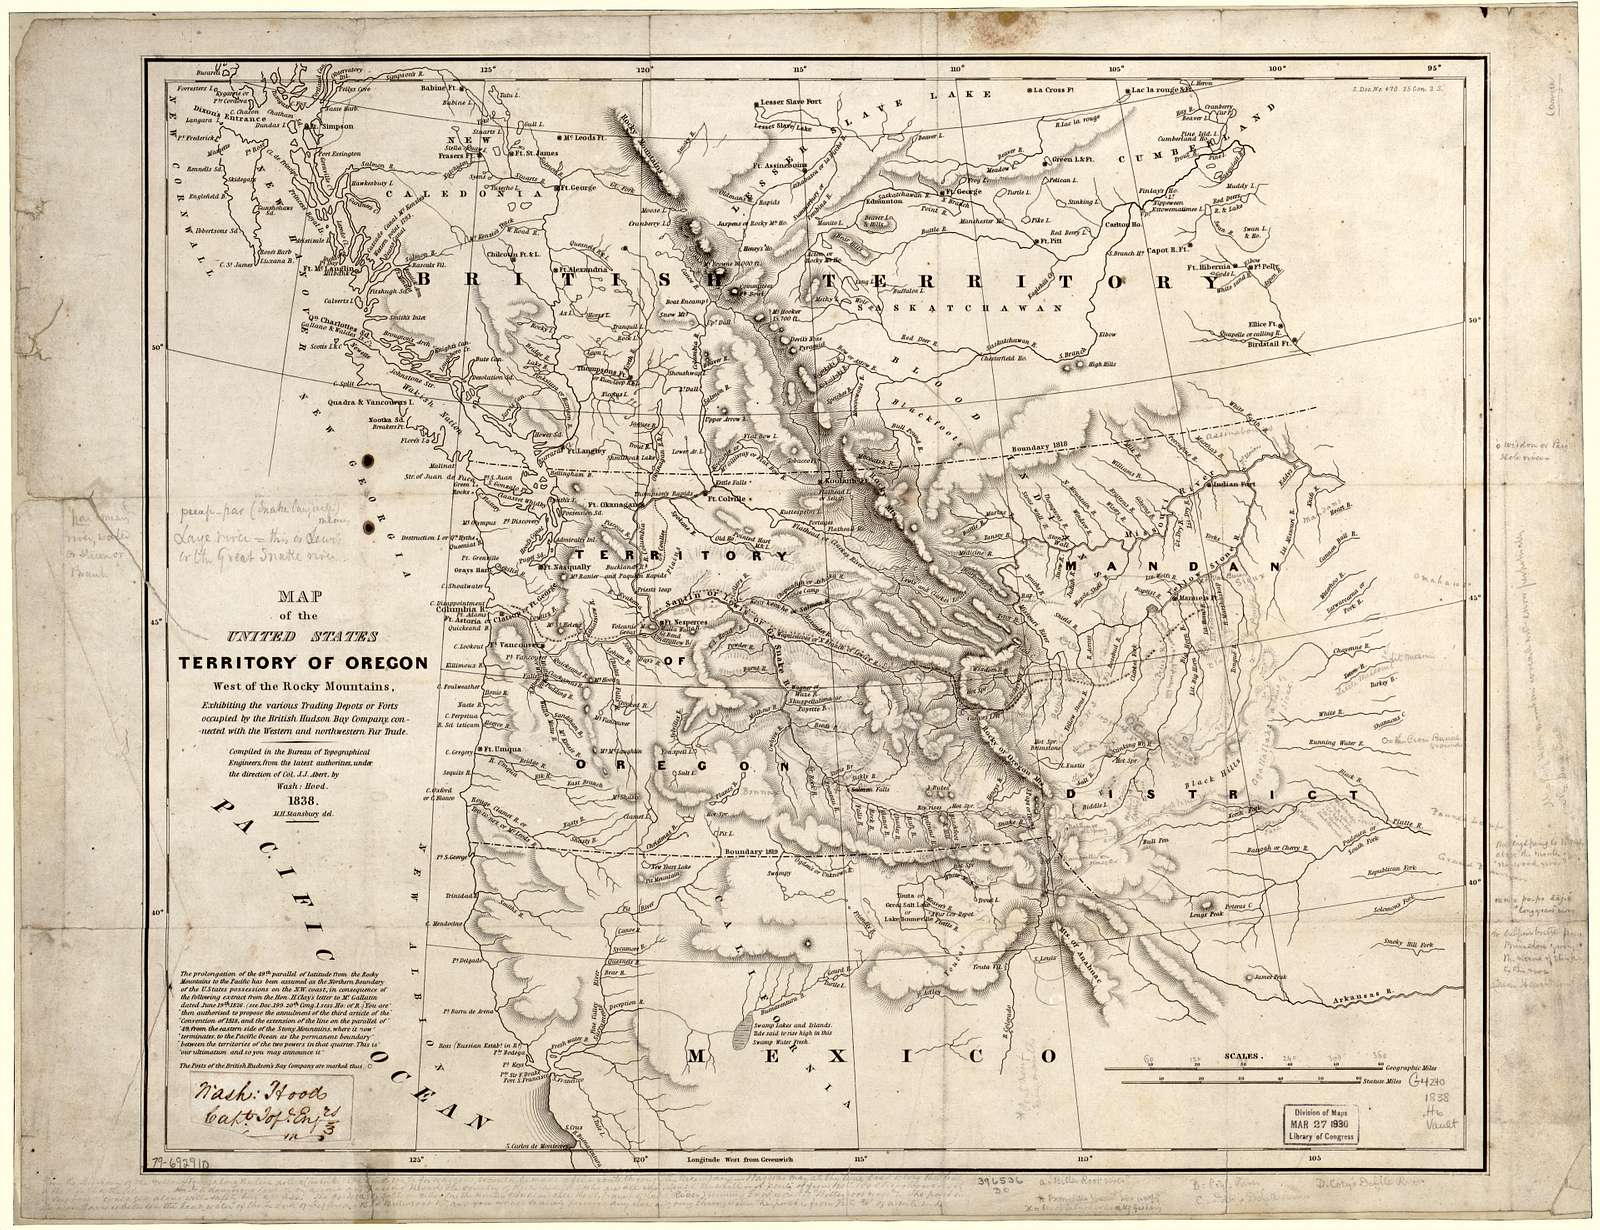 Map of the United States, Territory of Oregon, west of the Rocky Mountains, exhibiting the various trading depots or forts occupied by the British Hudson Bay Company, connected with the western and northwestern fur trade /